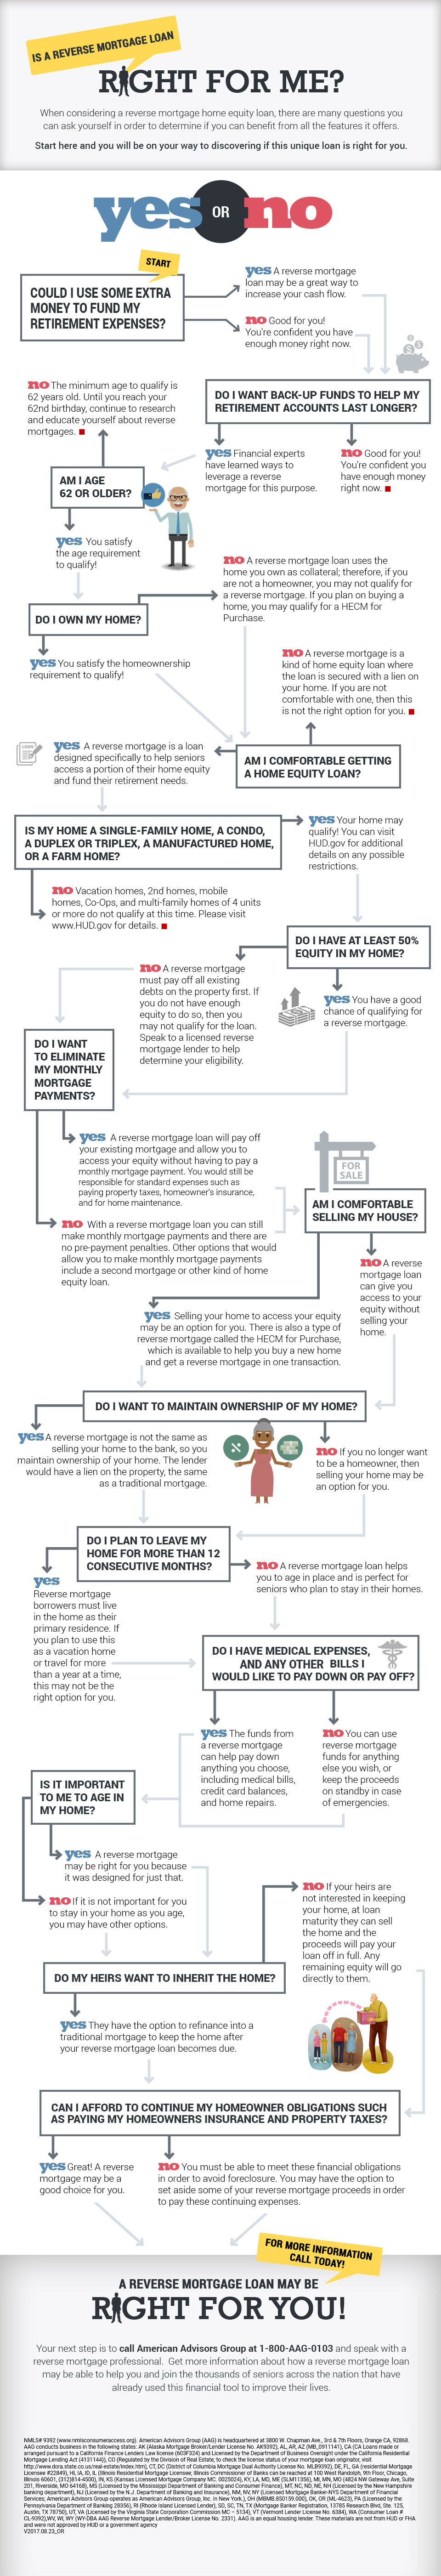 AAG Reverse Mortgage - Is a Reverse Mortgage Right For Me Infographic